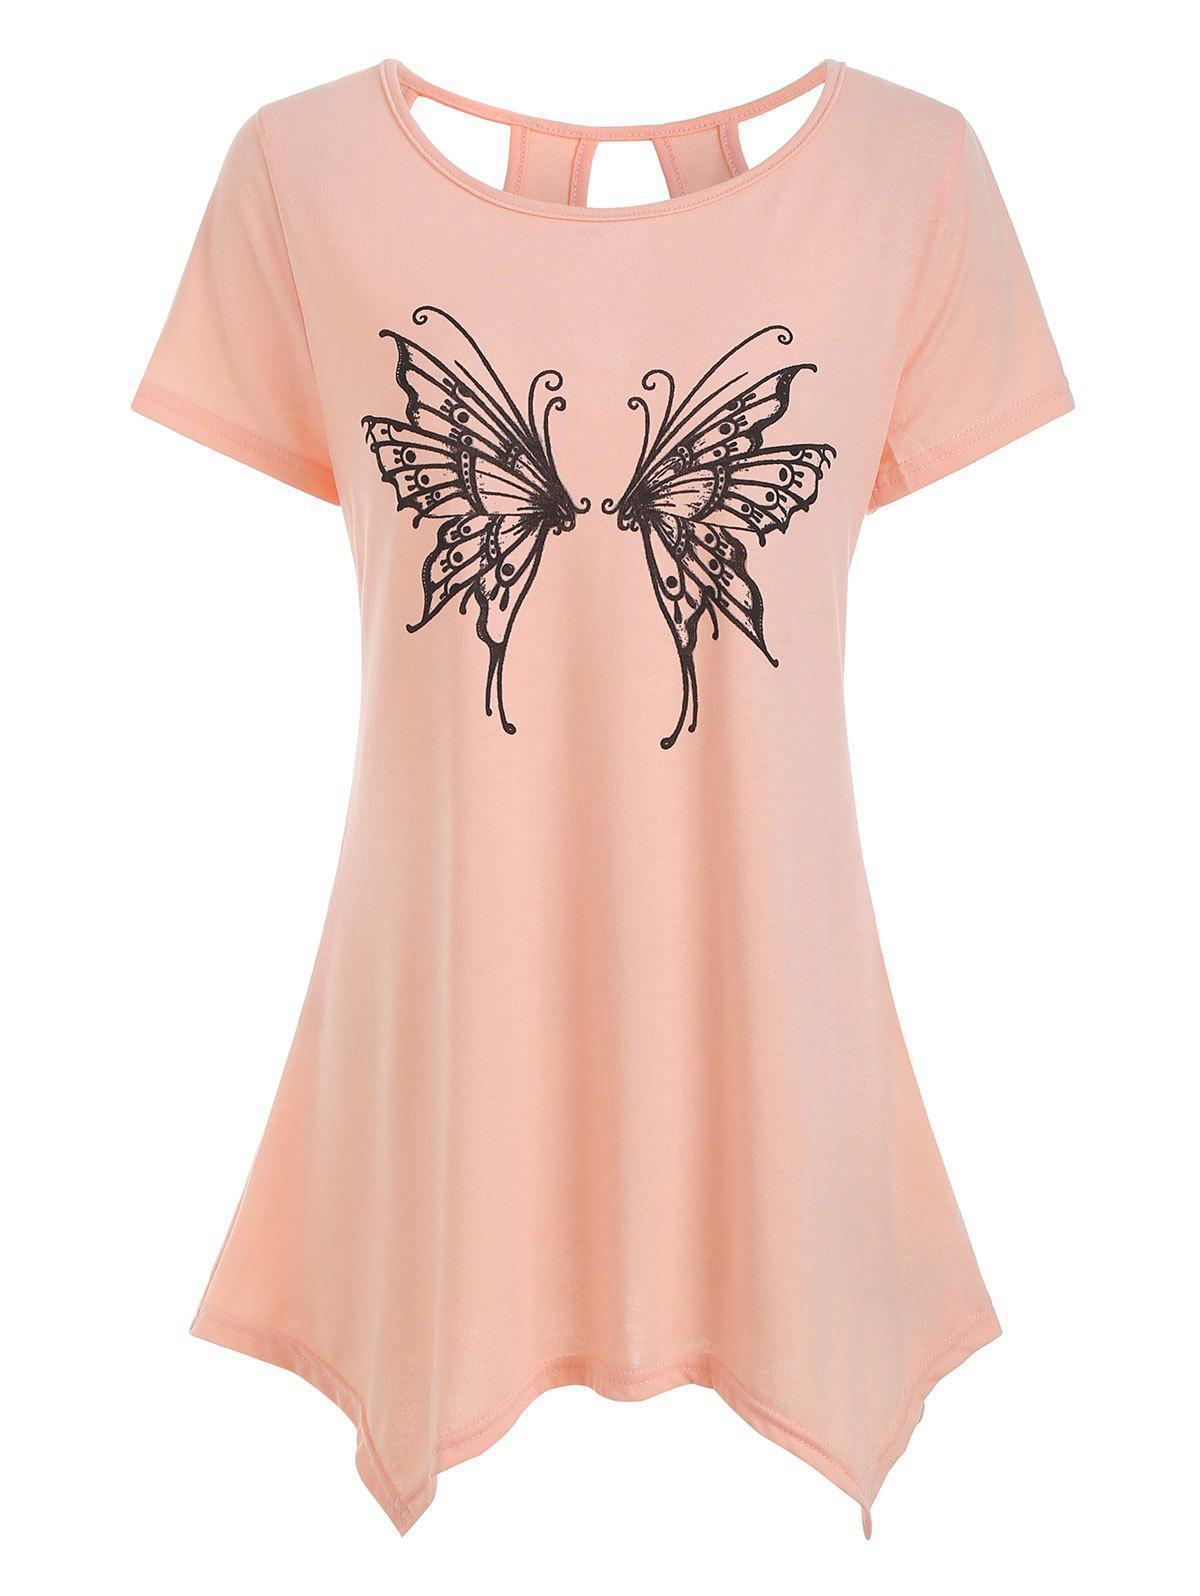 Fashion Cut Out Butterfly Graphic Longline Tee